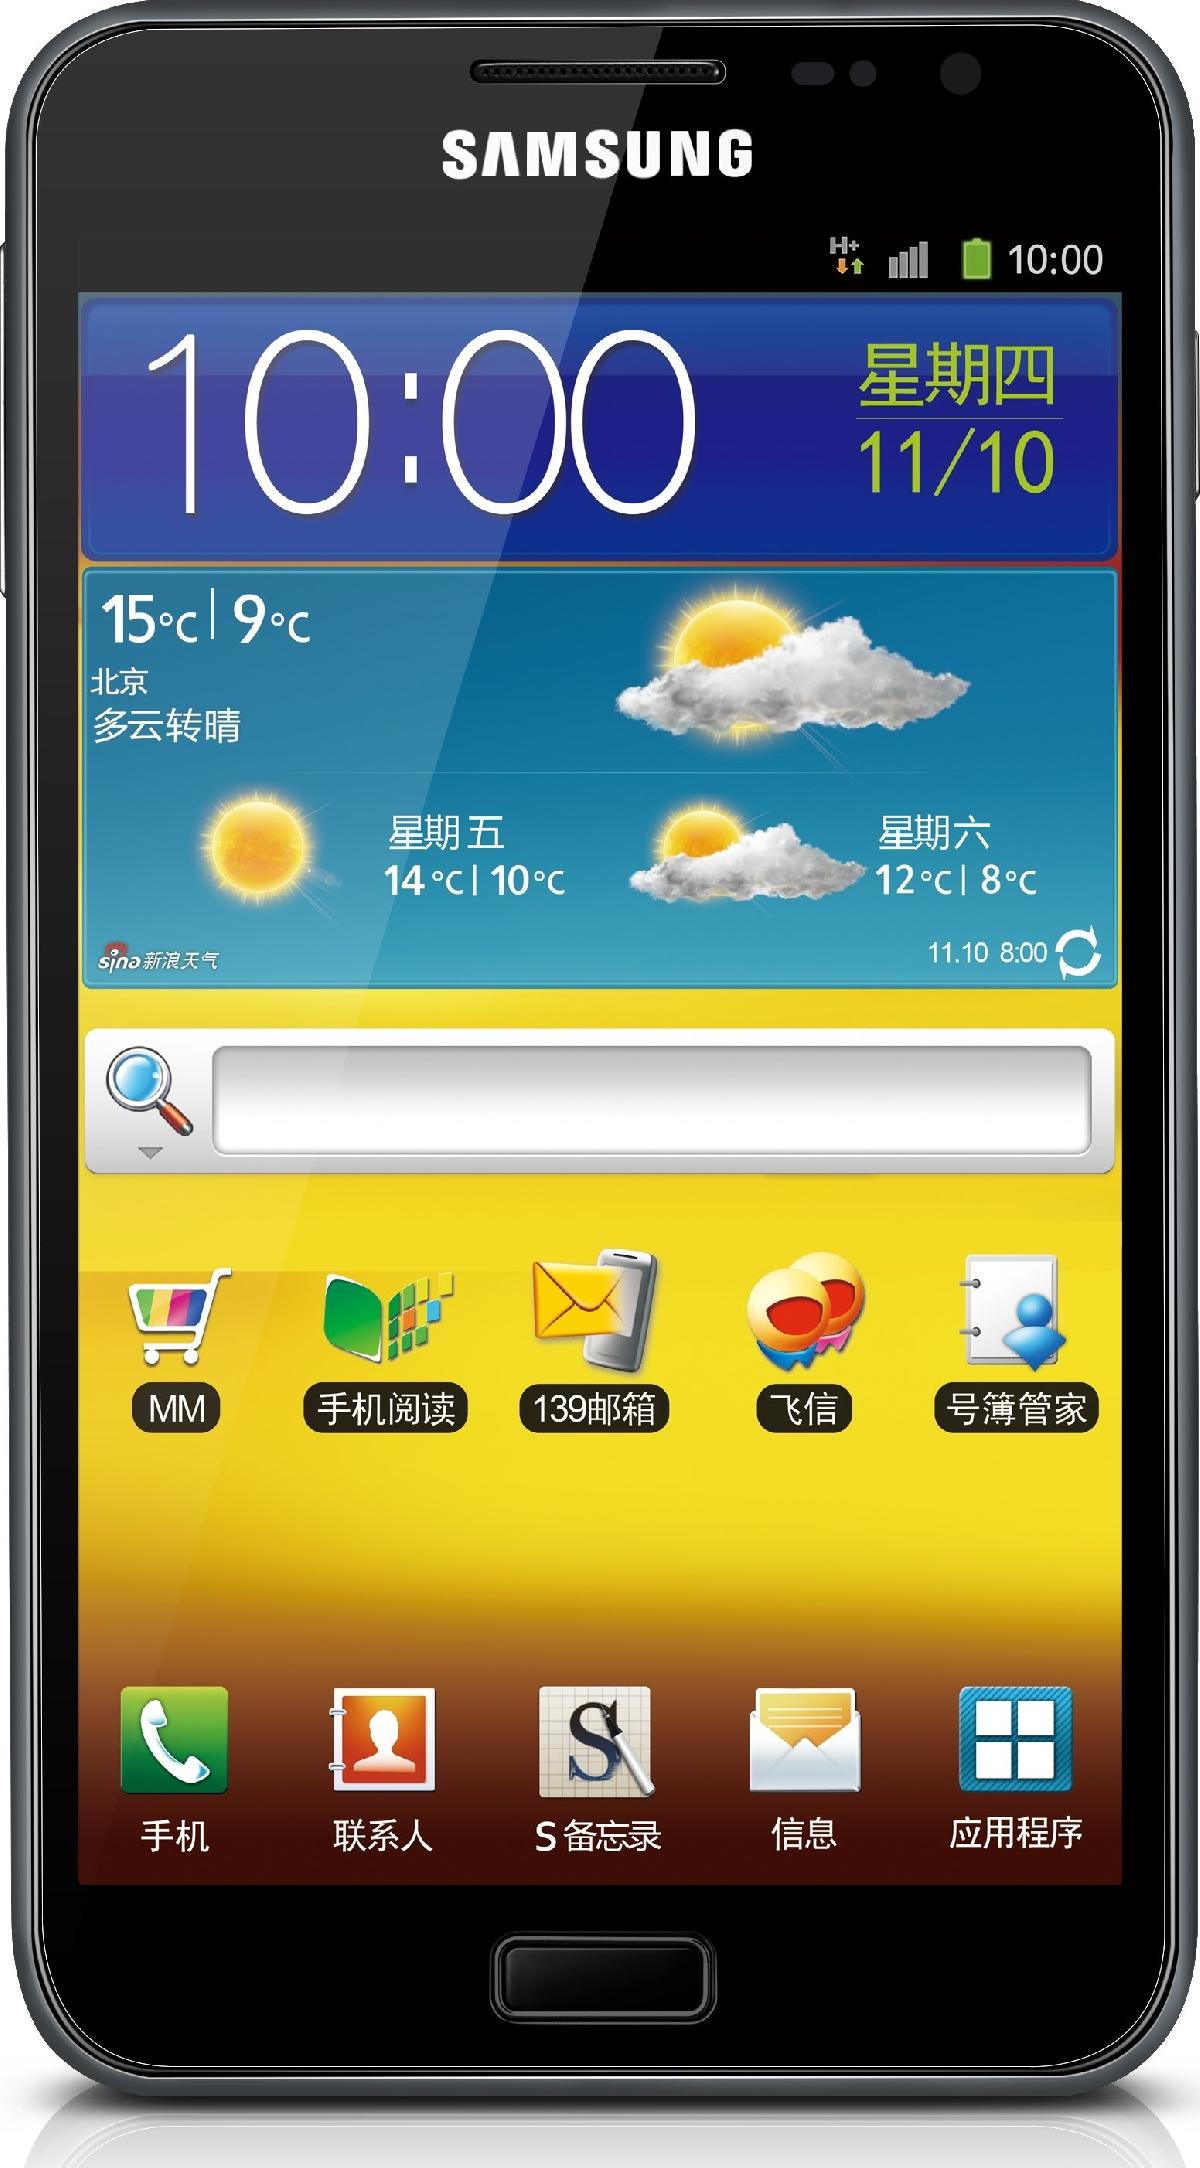 Galaxy Note (China – TD SCDMA) GT-I9228